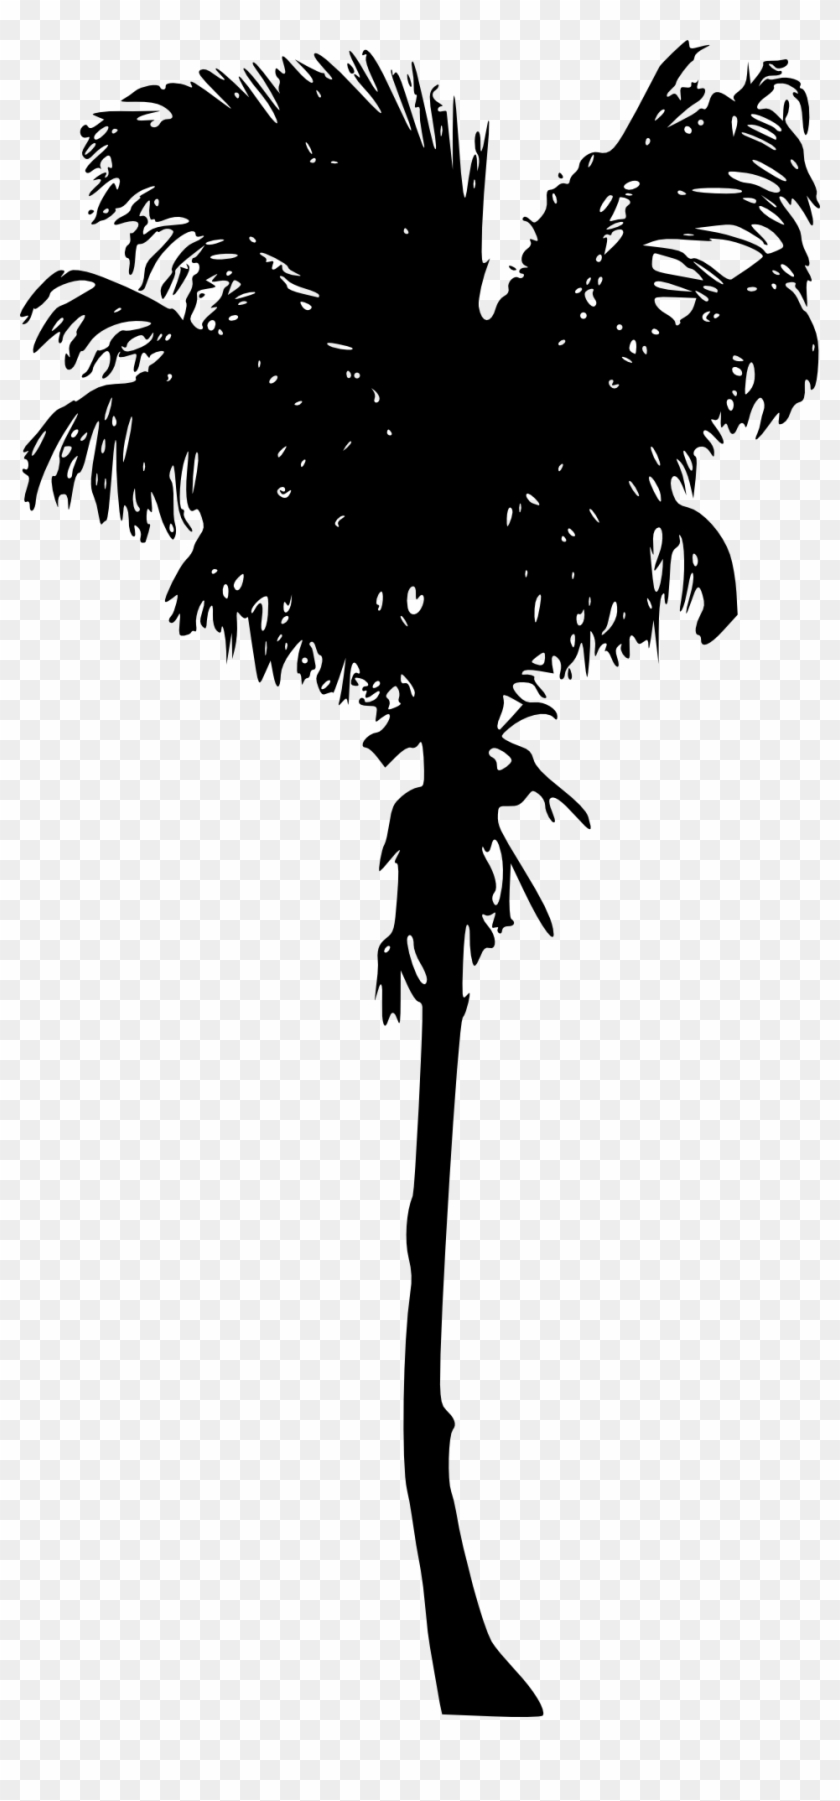 Free Download - Palm Tree Clipart #447233